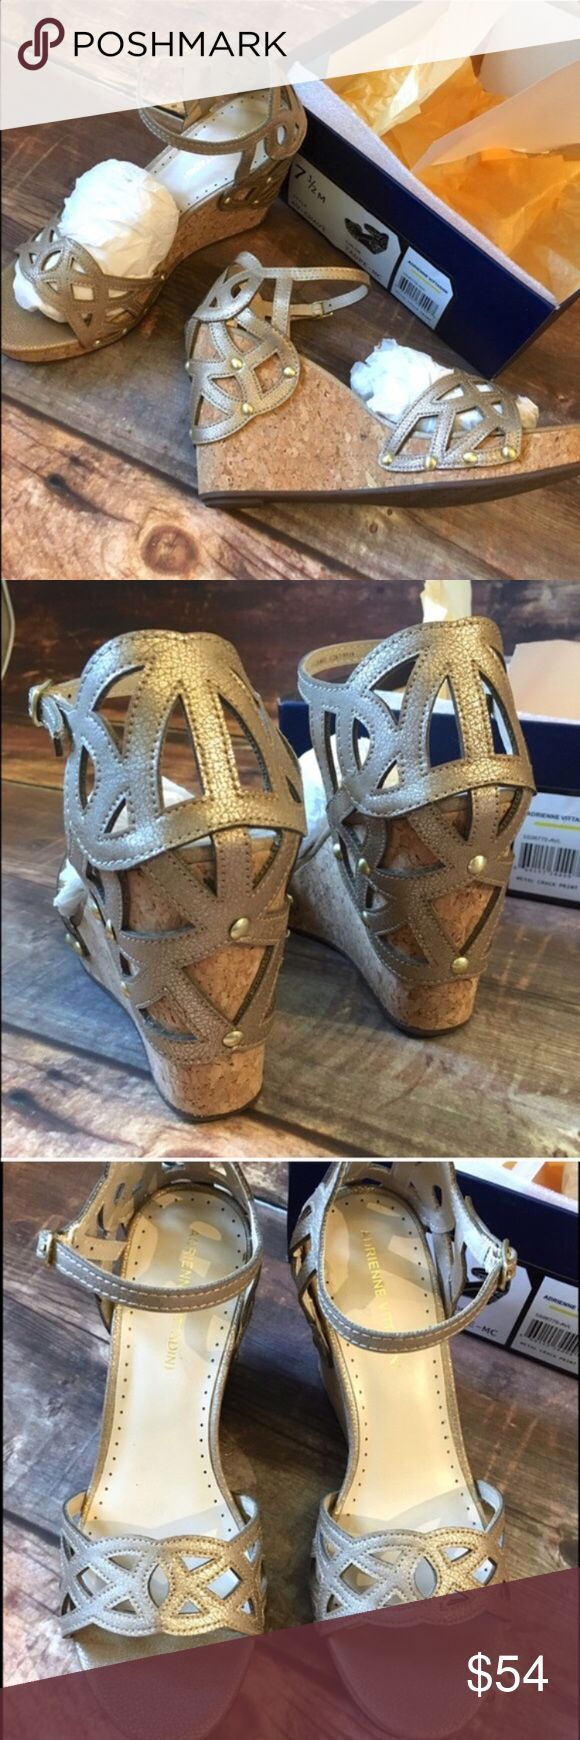 NWT Adrienne Vittadini cutout platform wedge sanda Gorgeous!! New in Box cork platform wedges with a very pretty cut out design. Leather upper. Add this to a bundle to save 15%. Adrienne Vittadini Shoes Wedges